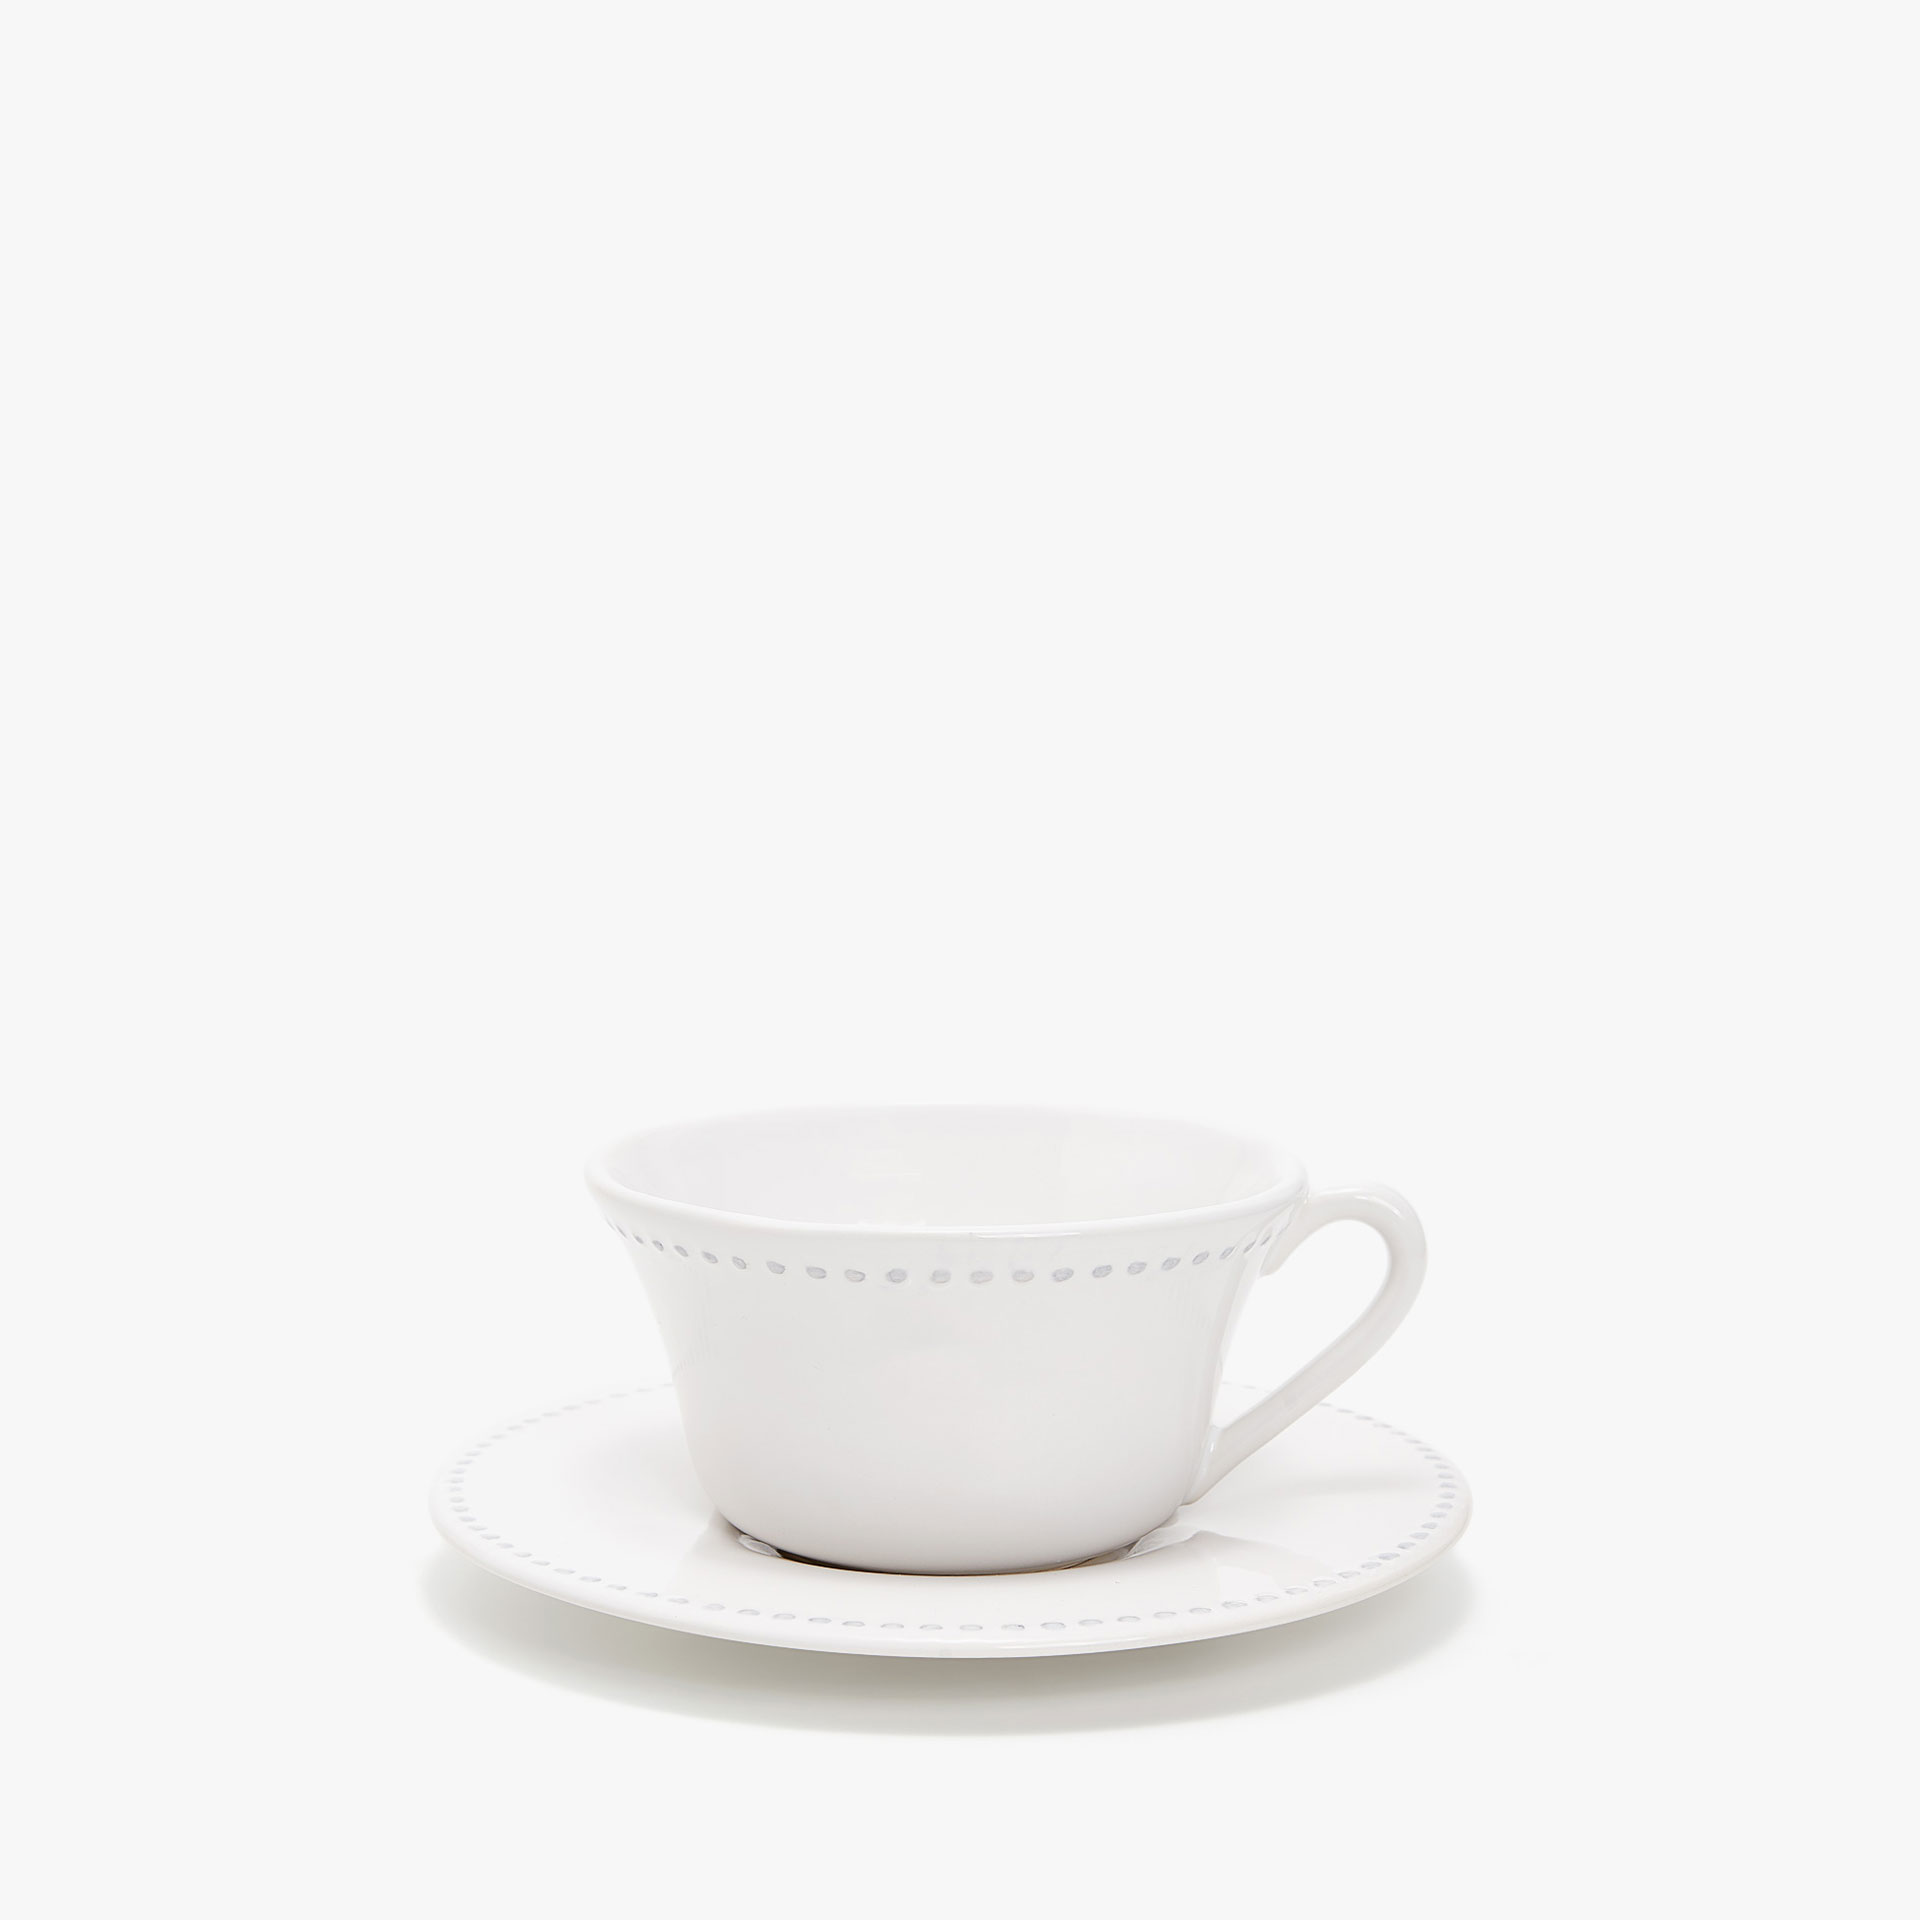 EARTHENWARE RAISED-DESIGN EDGE BREAKFAST MUG AND SAUCER